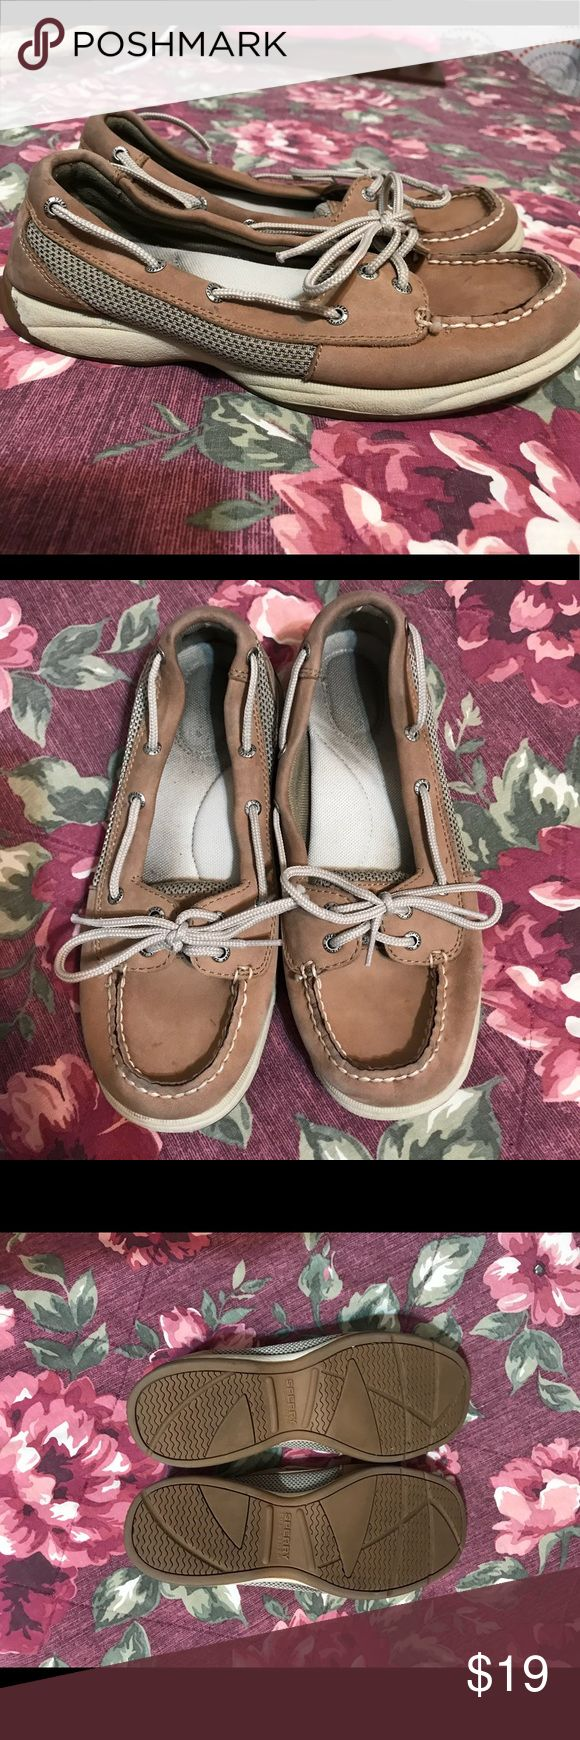 ✨WEEKEND SALE✨ Sperry Top Sider Women's Boat Shoes 🌸Fair condition. Well loved.  🌸Size 8 🌸Selling as is. Sperry Top-Sider Shoes Flats & Loafers